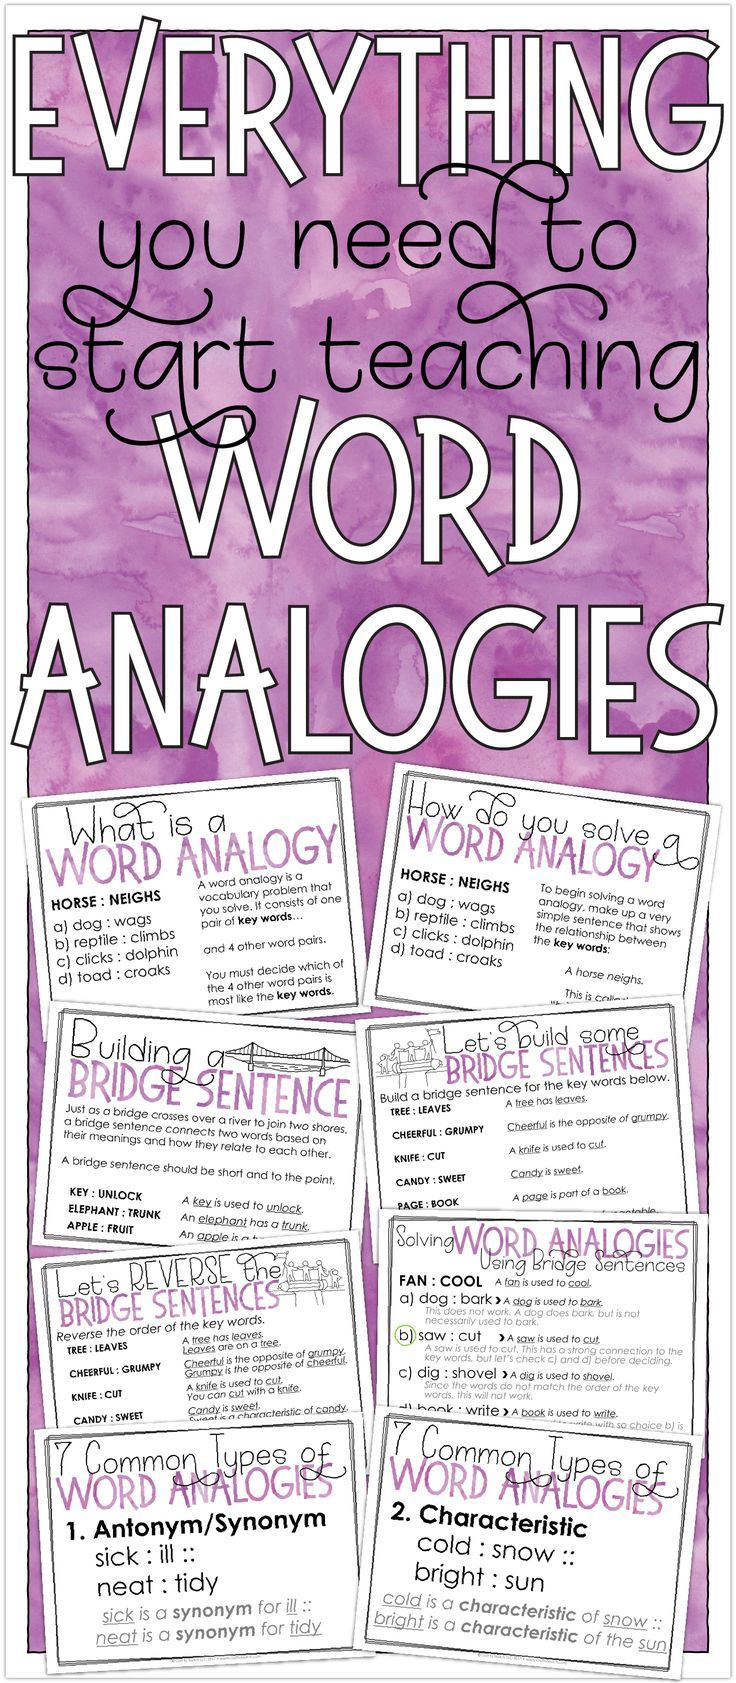 Free resources to start teaching your students how to solve word analogies.